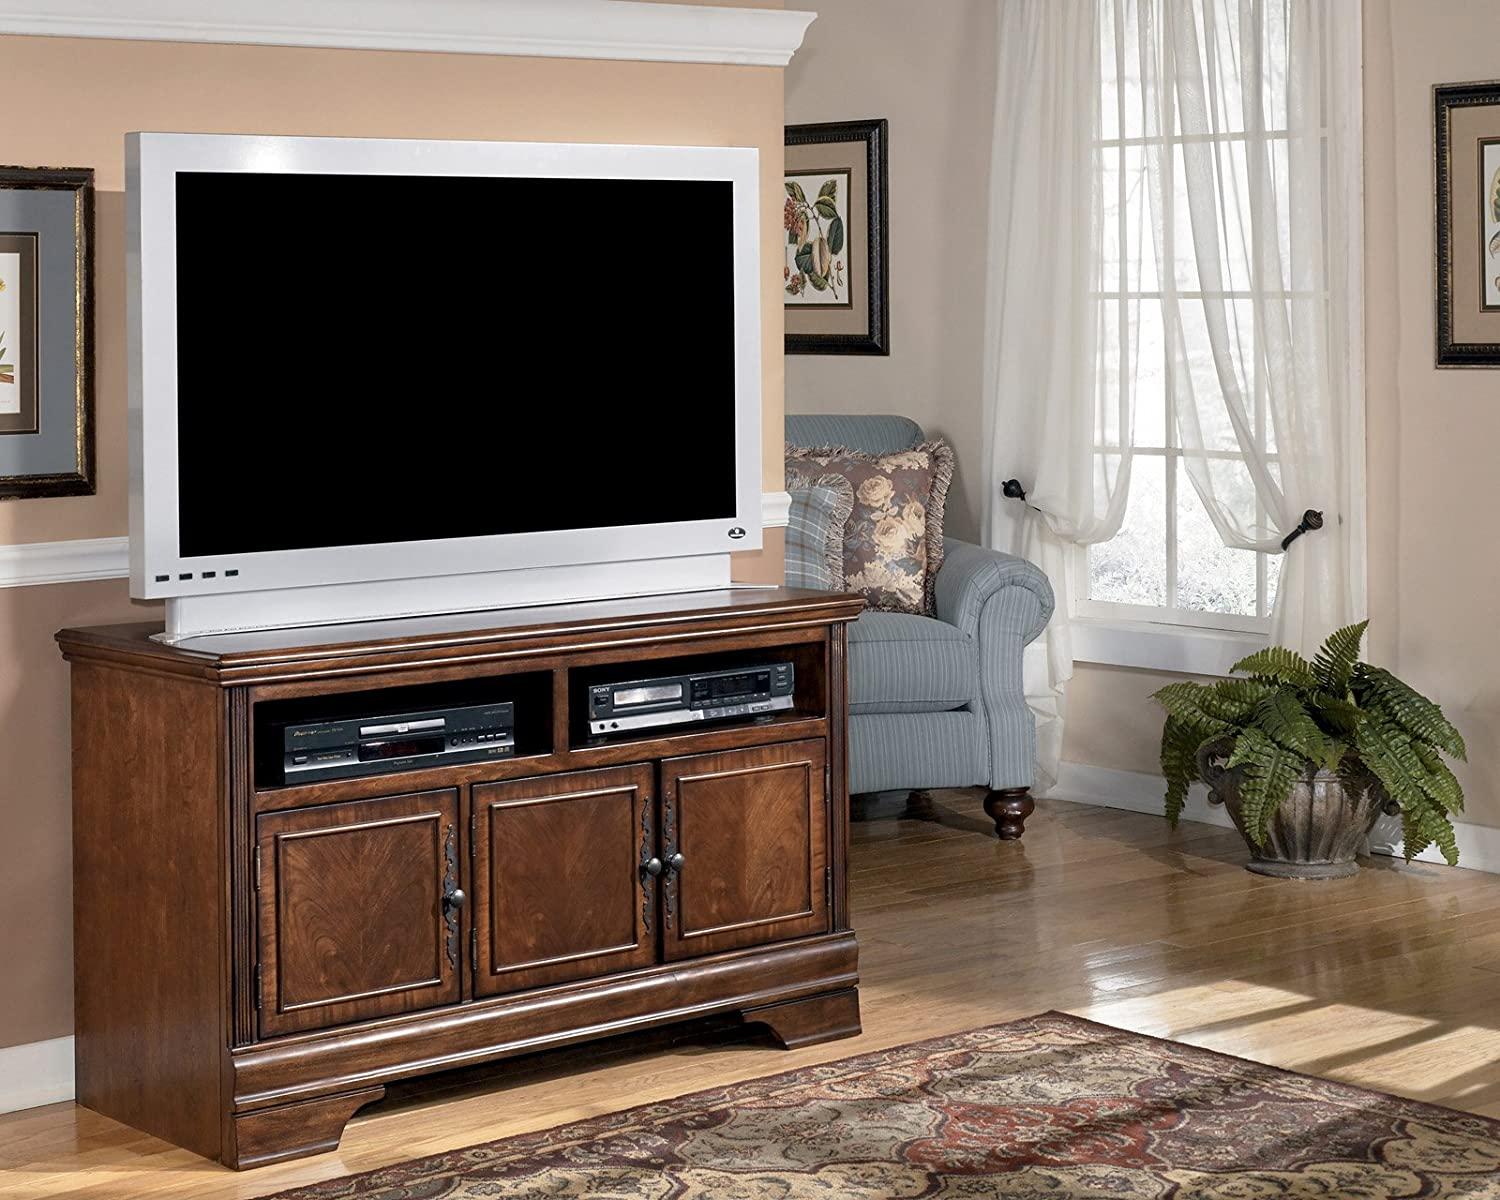 Wonderful Amazon.com: Dark Brown Medium TV Stand   Signature Design By Ashley  Furniture: Kitchen U0026 Dining